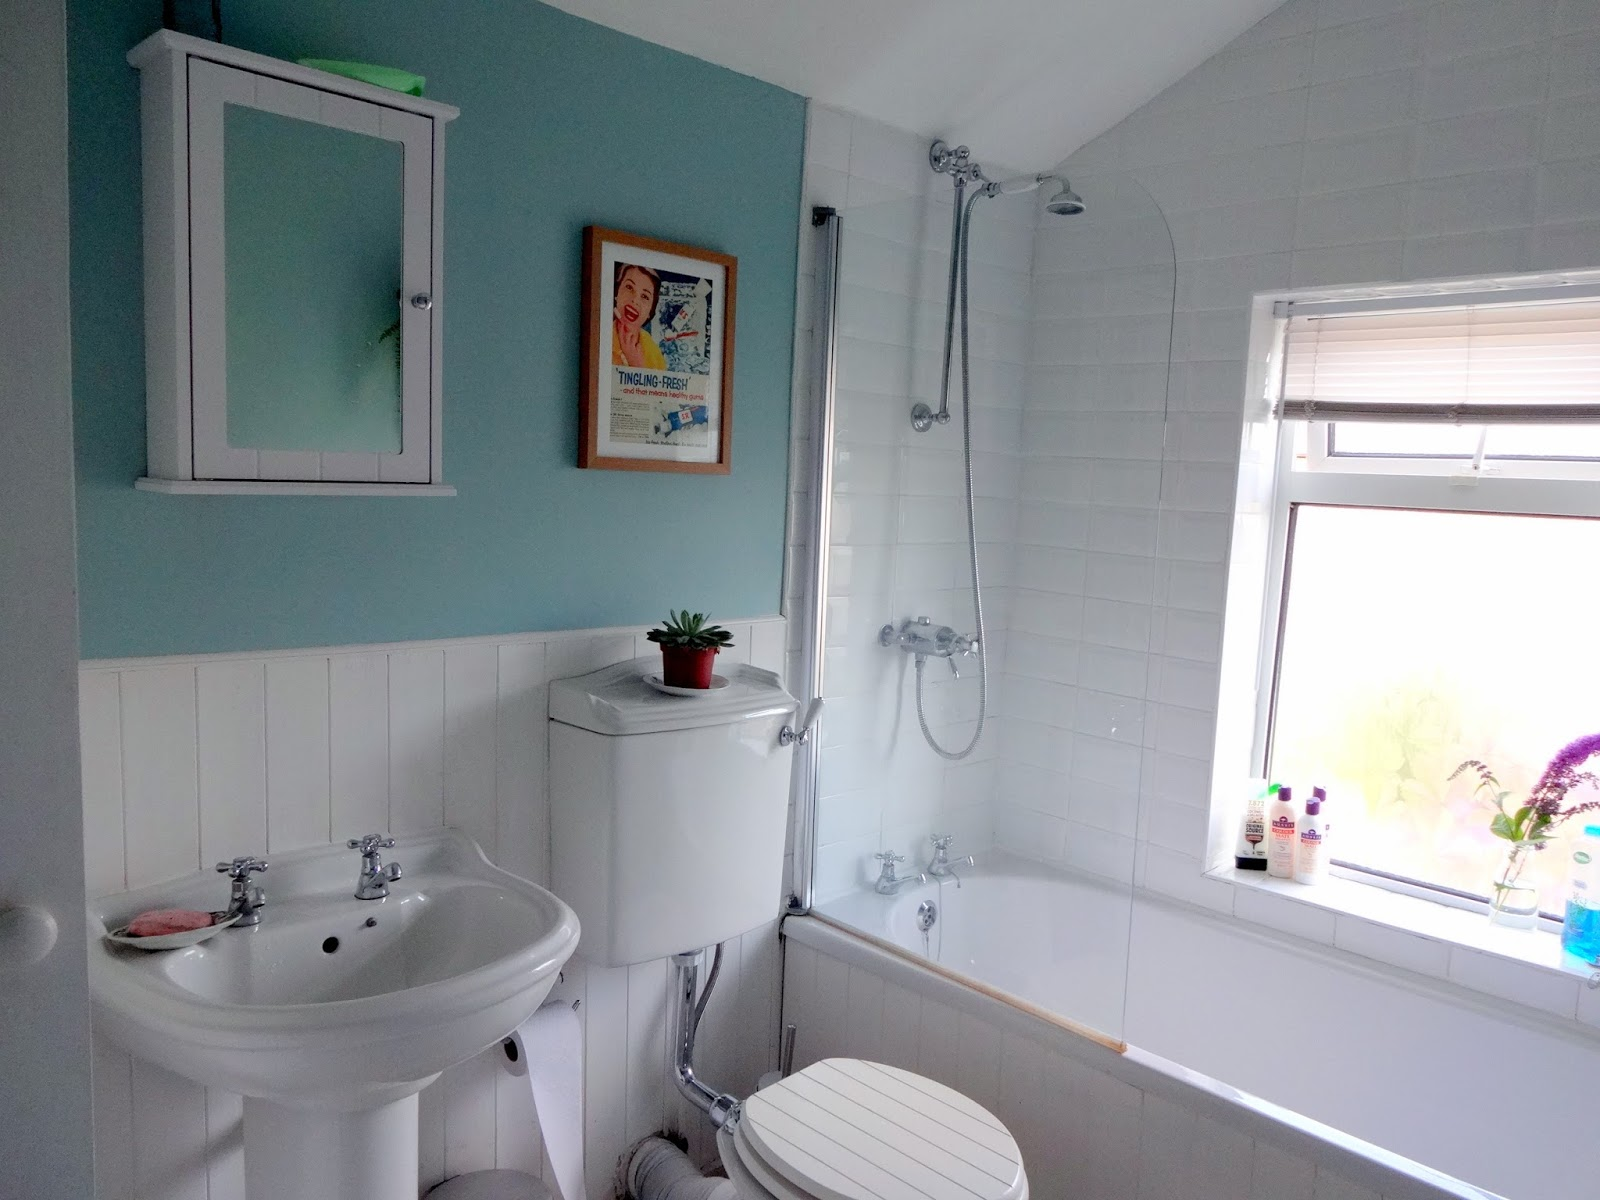 Bathroom Makeover In Hull bathroom makeover - before & after | make do and mend